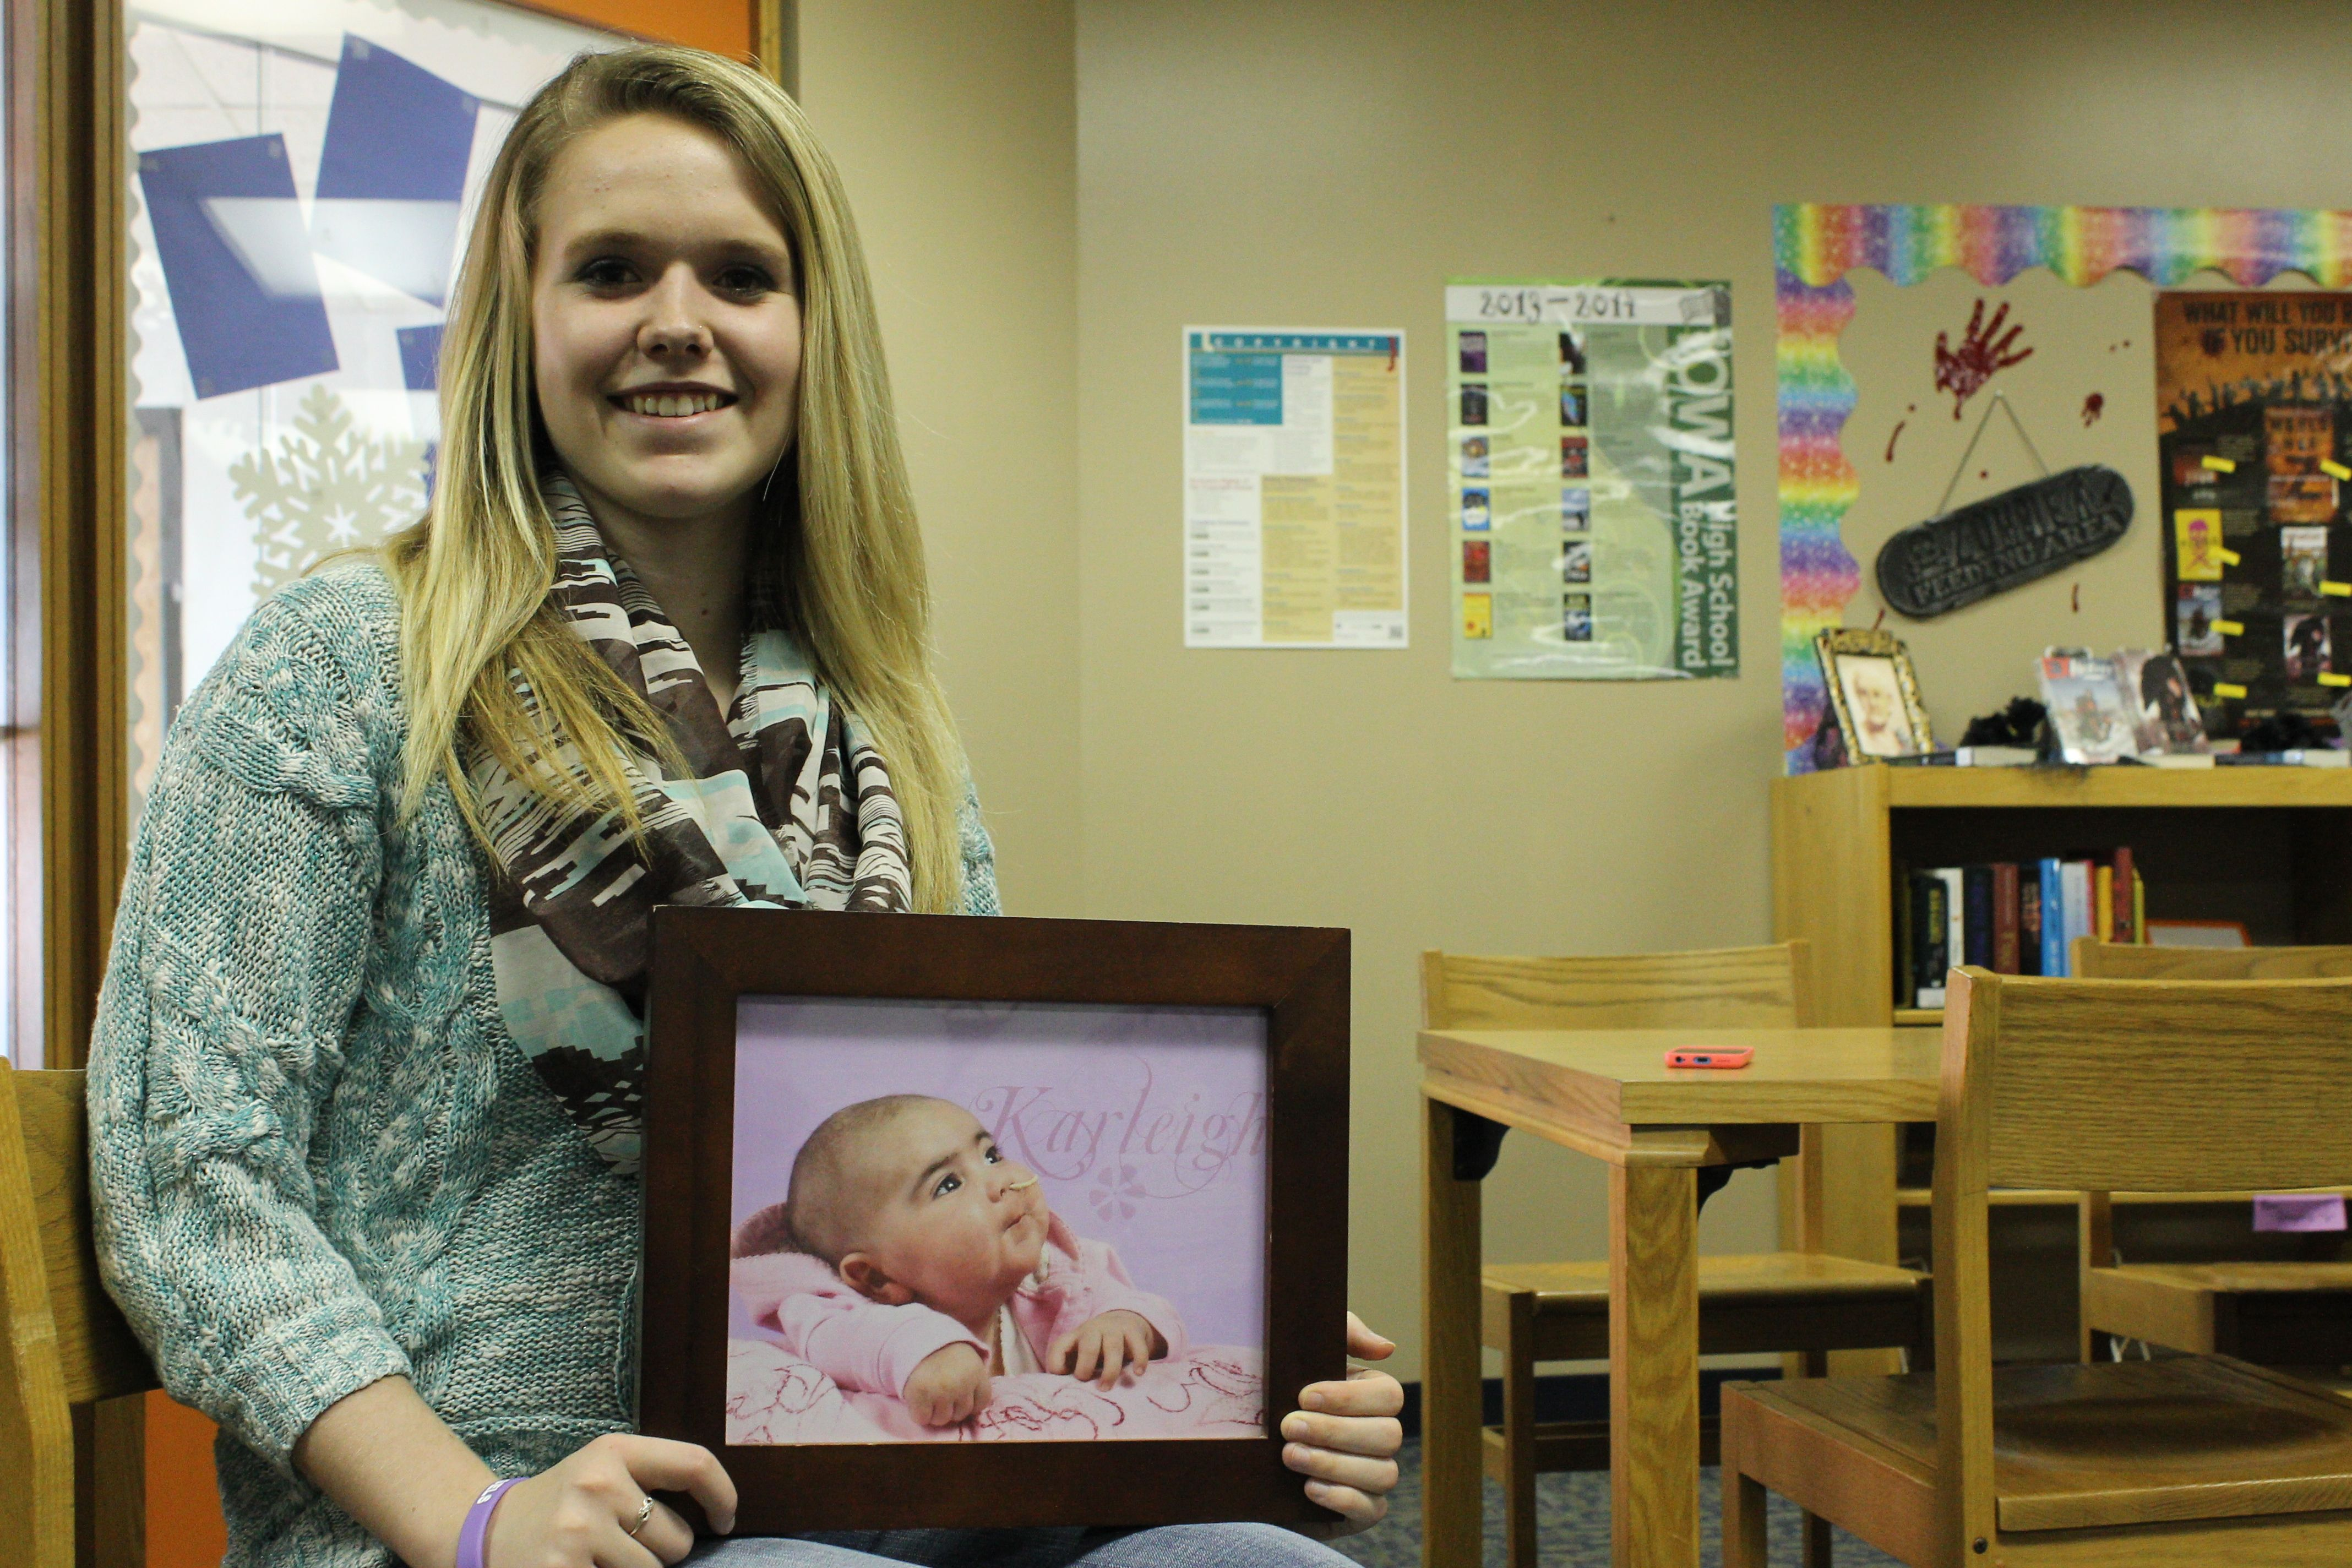 Kayla Baker, 17, is a senior at Colo-NESCO High School and is holding a bone marrow drive on Saturday, Feb. 8. Her baby sister, Karleigh, passed away in 2009 after being diagnosed with a rare white blood cell disease that required chemotherapy and a bone marrow transplant. Photo by Julie Ferrell/Ames Tribune